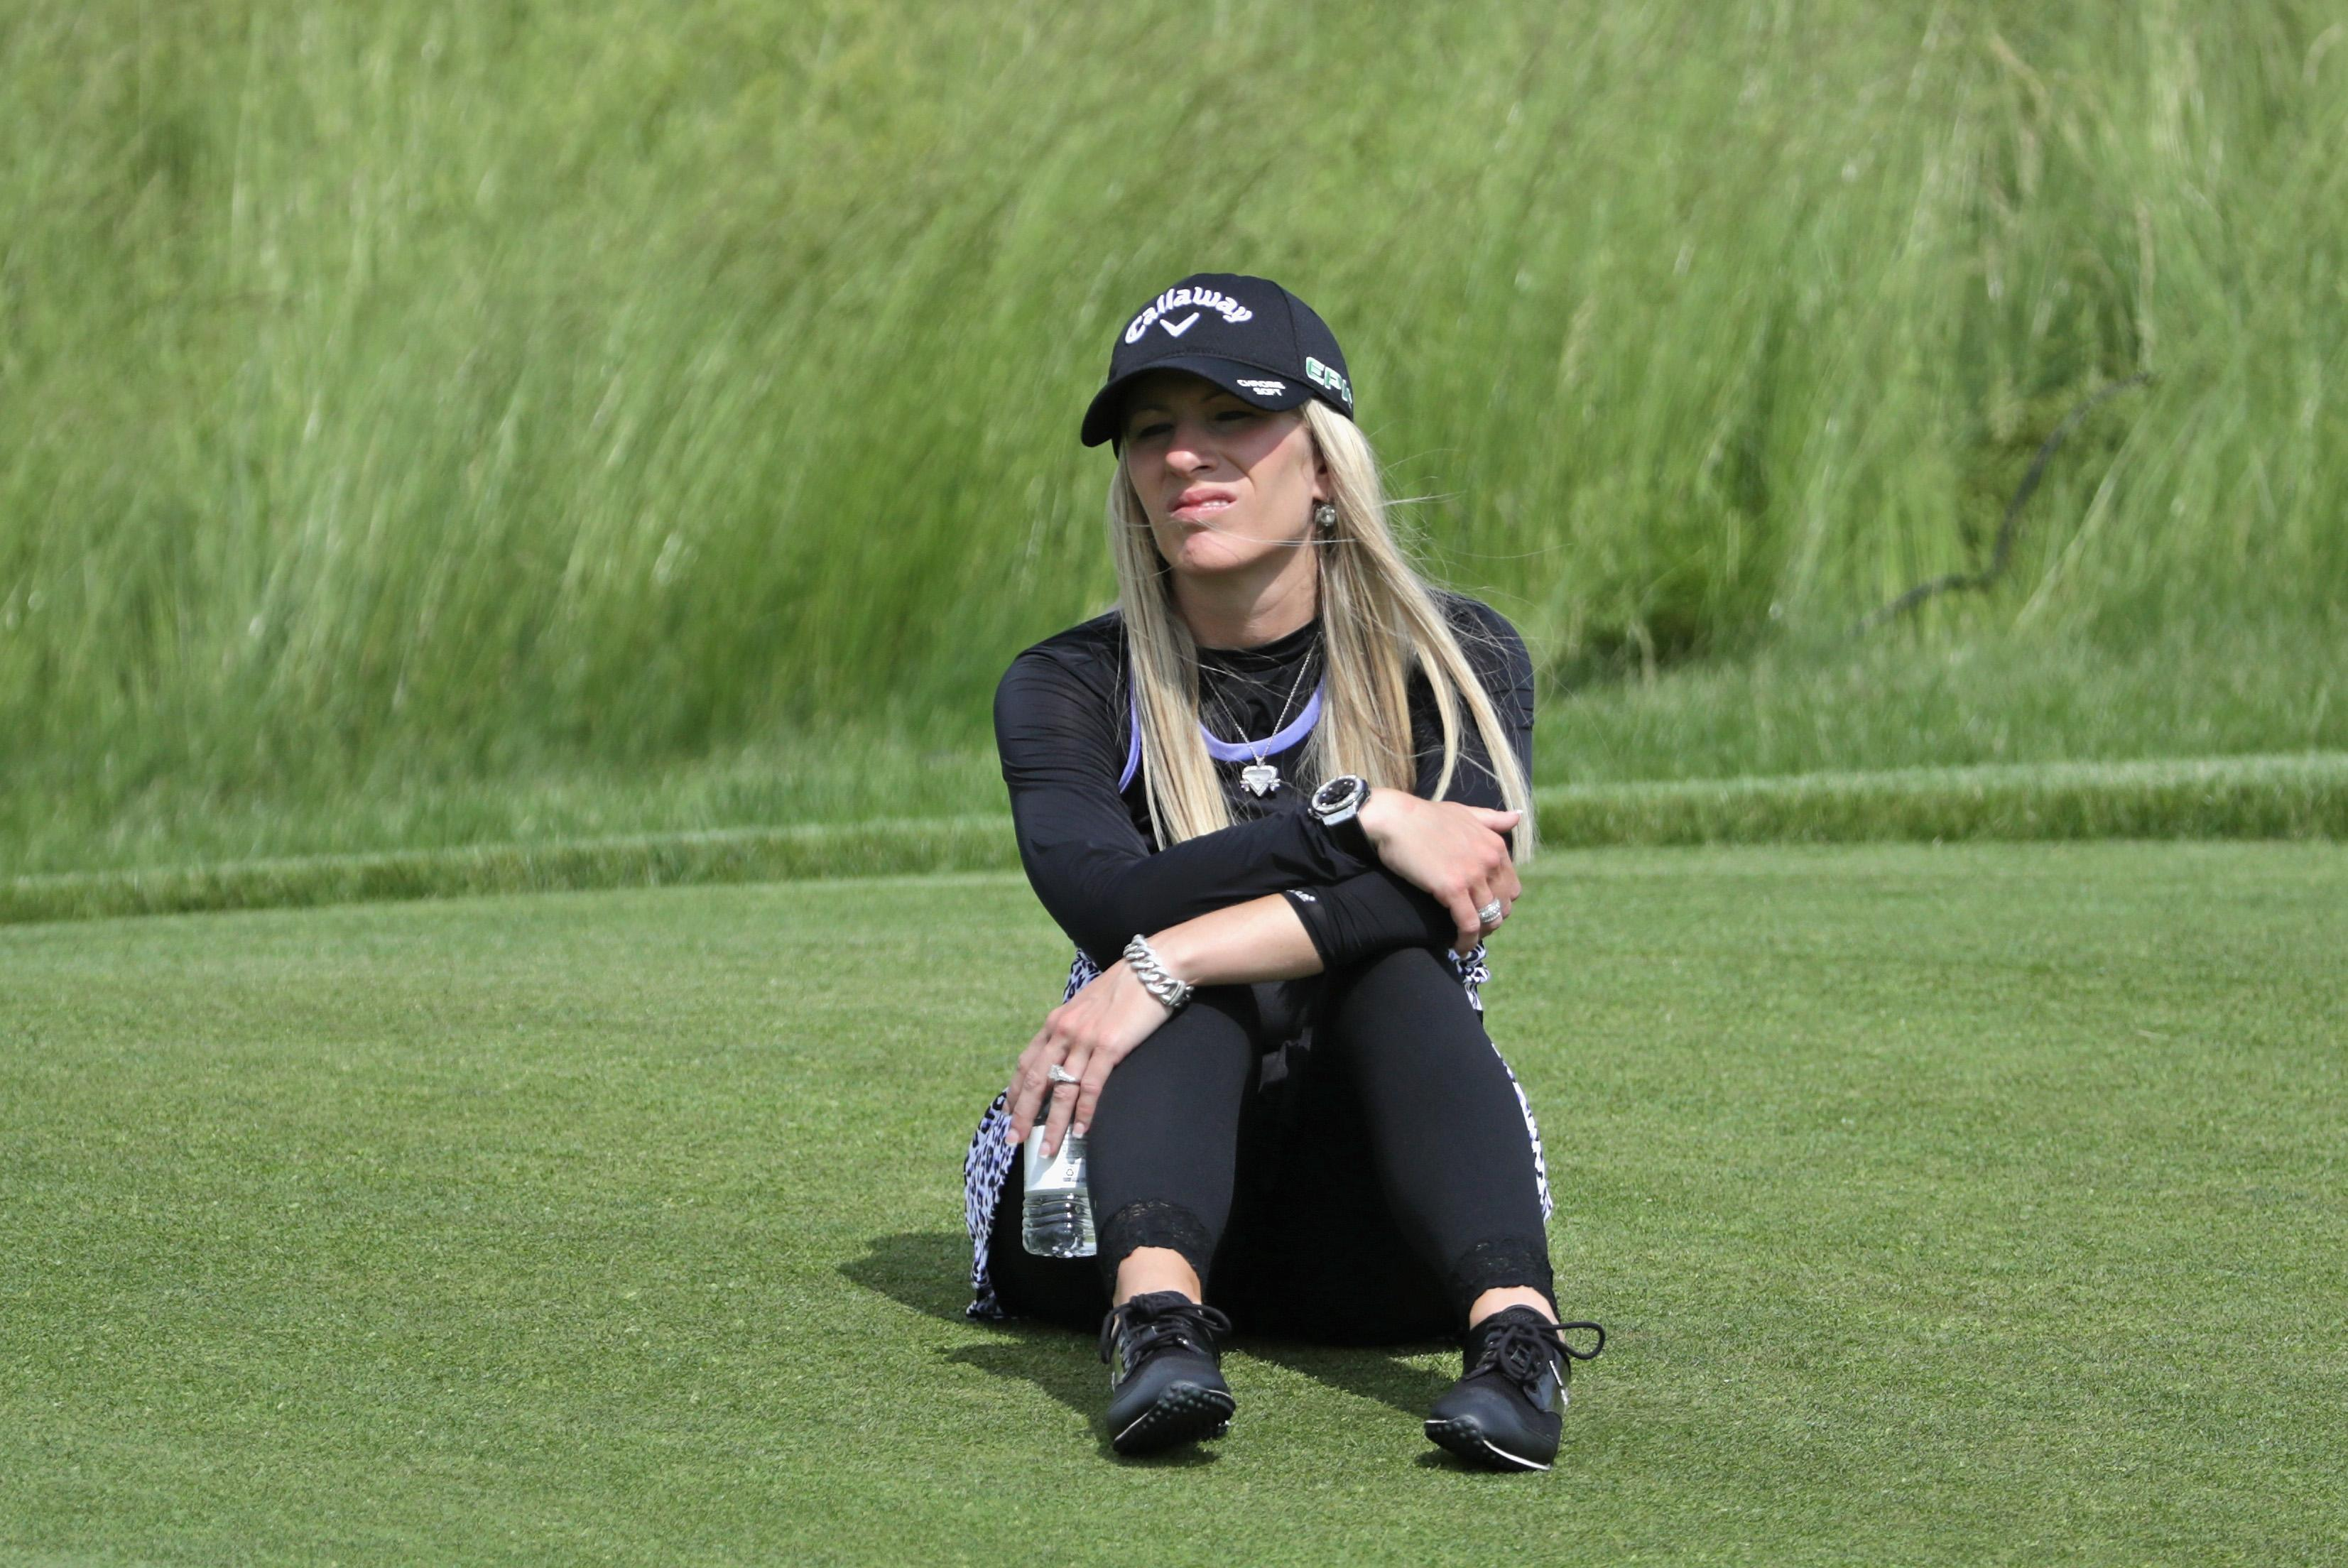 Justine Reed is usually seen with husband Patrick on the golf course